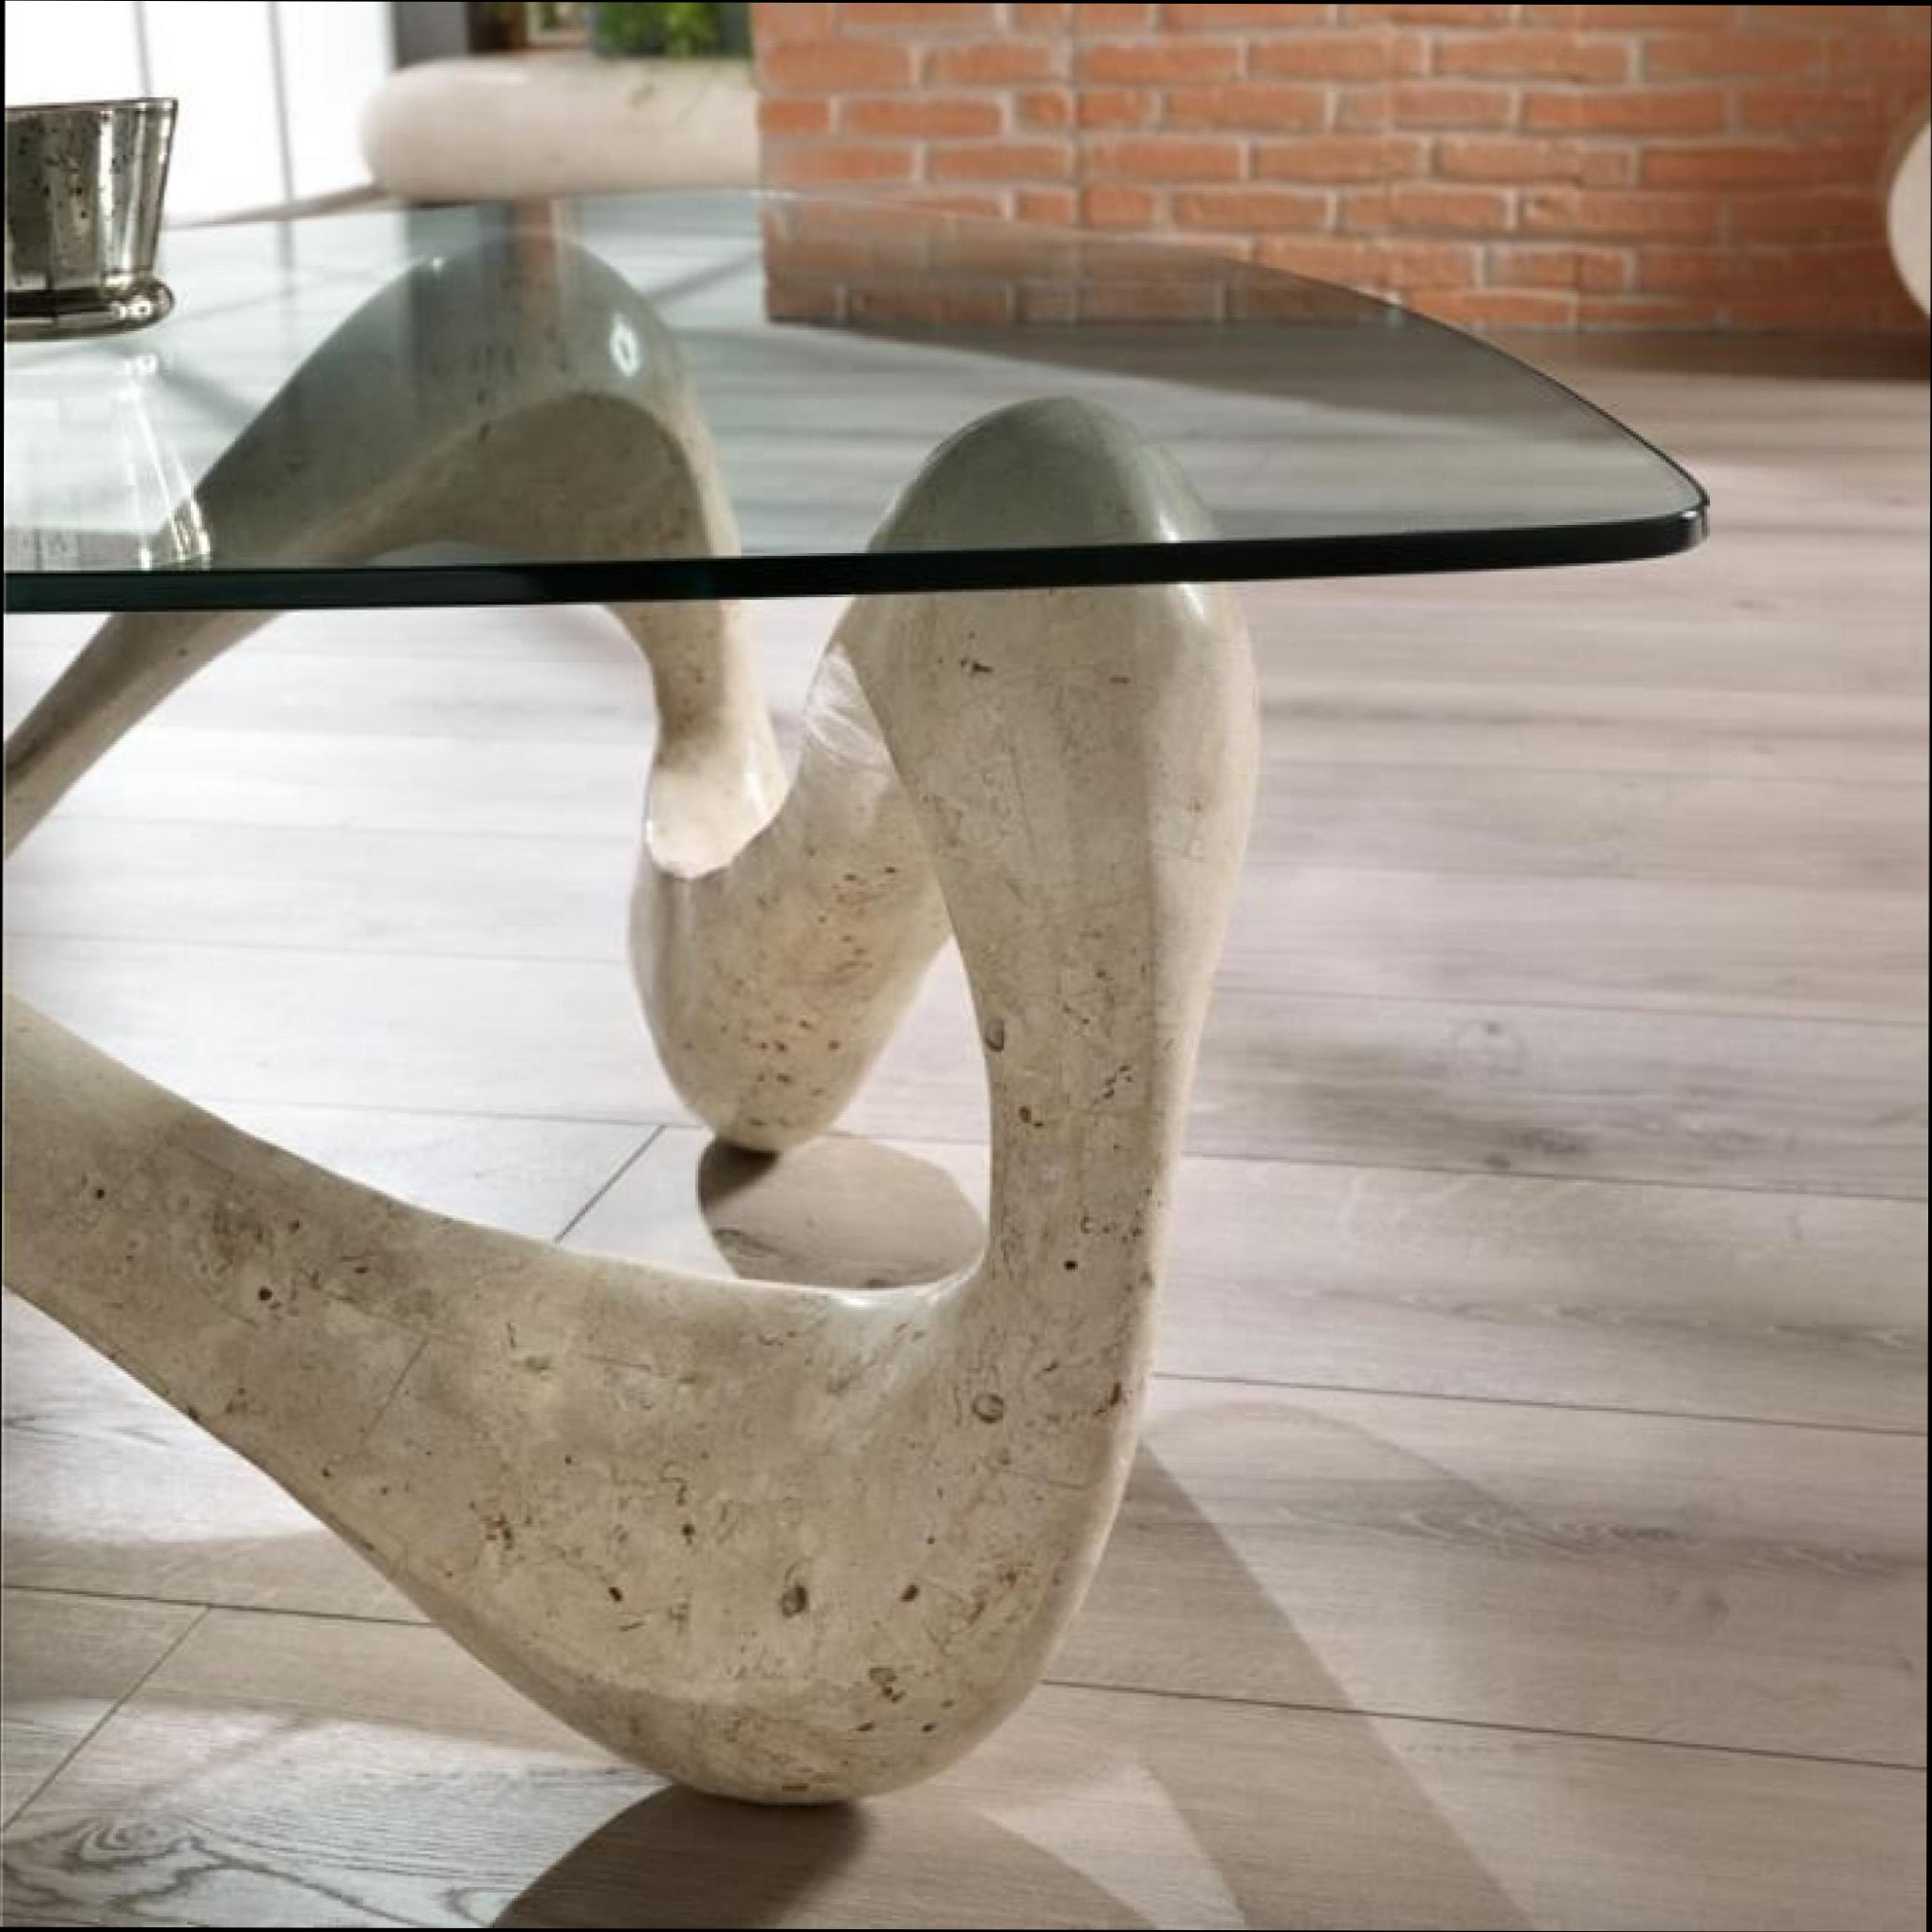 table basse en verre avec pied en pierre mobilier design d coration d 39 int rieur. Black Bedroom Furniture Sets. Home Design Ideas